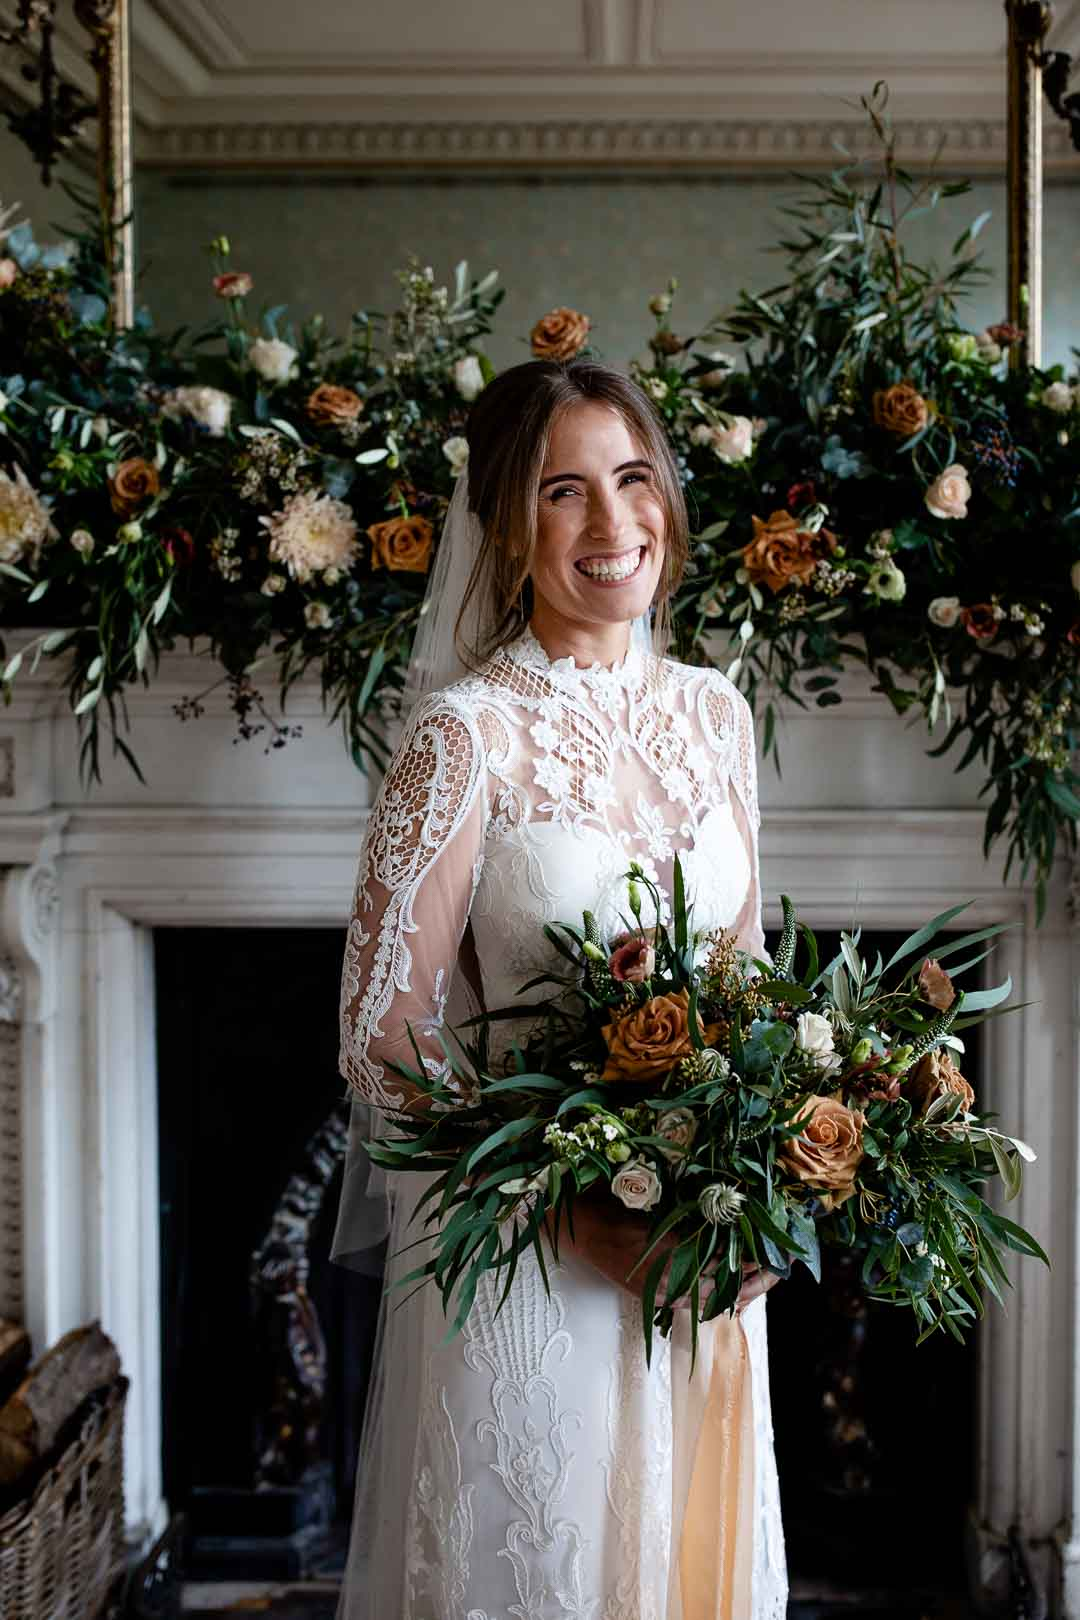 Alex and her wedding flowers